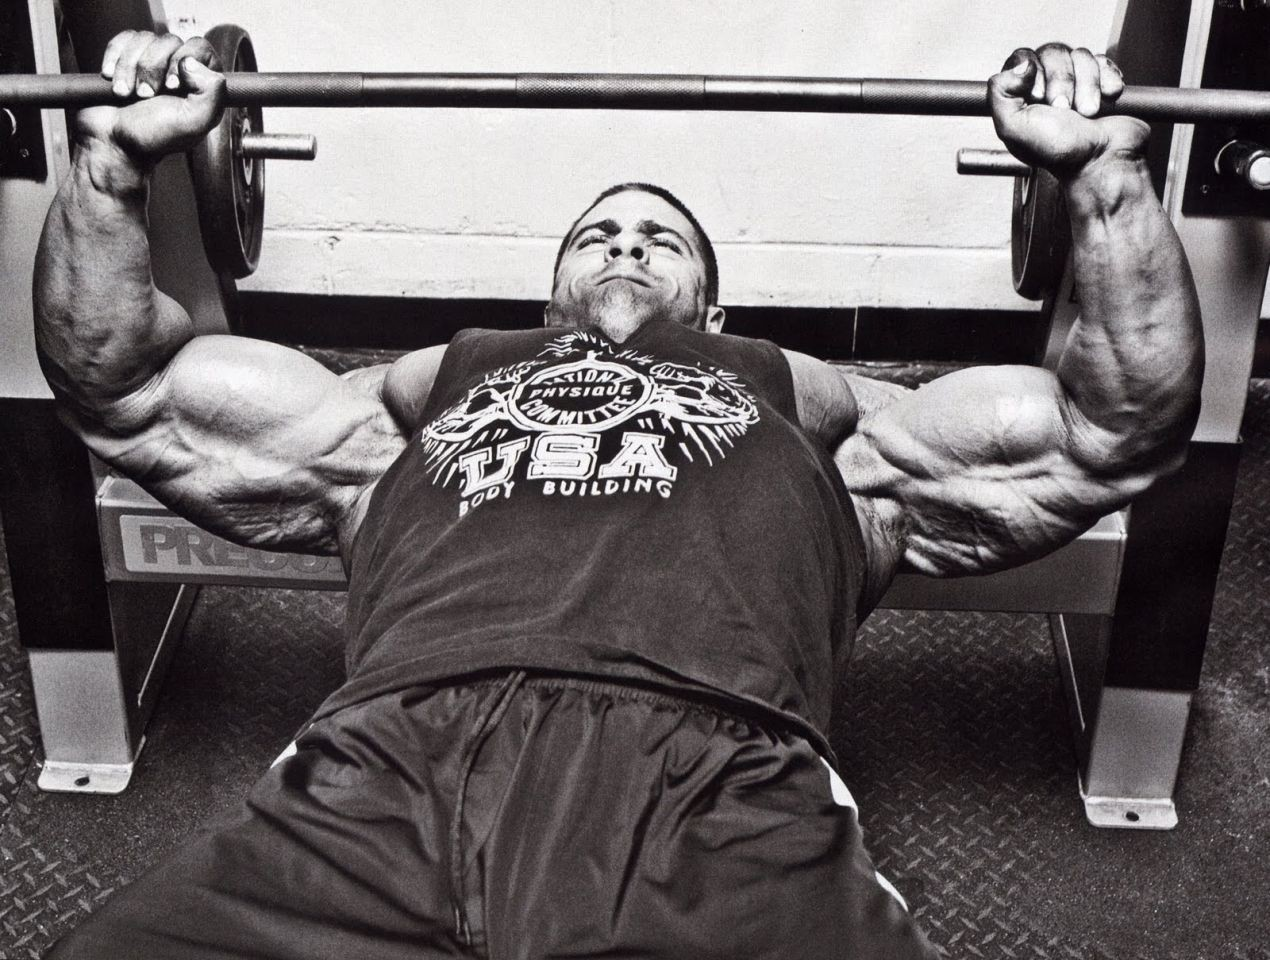 Grip width in the bench press. How to choose.